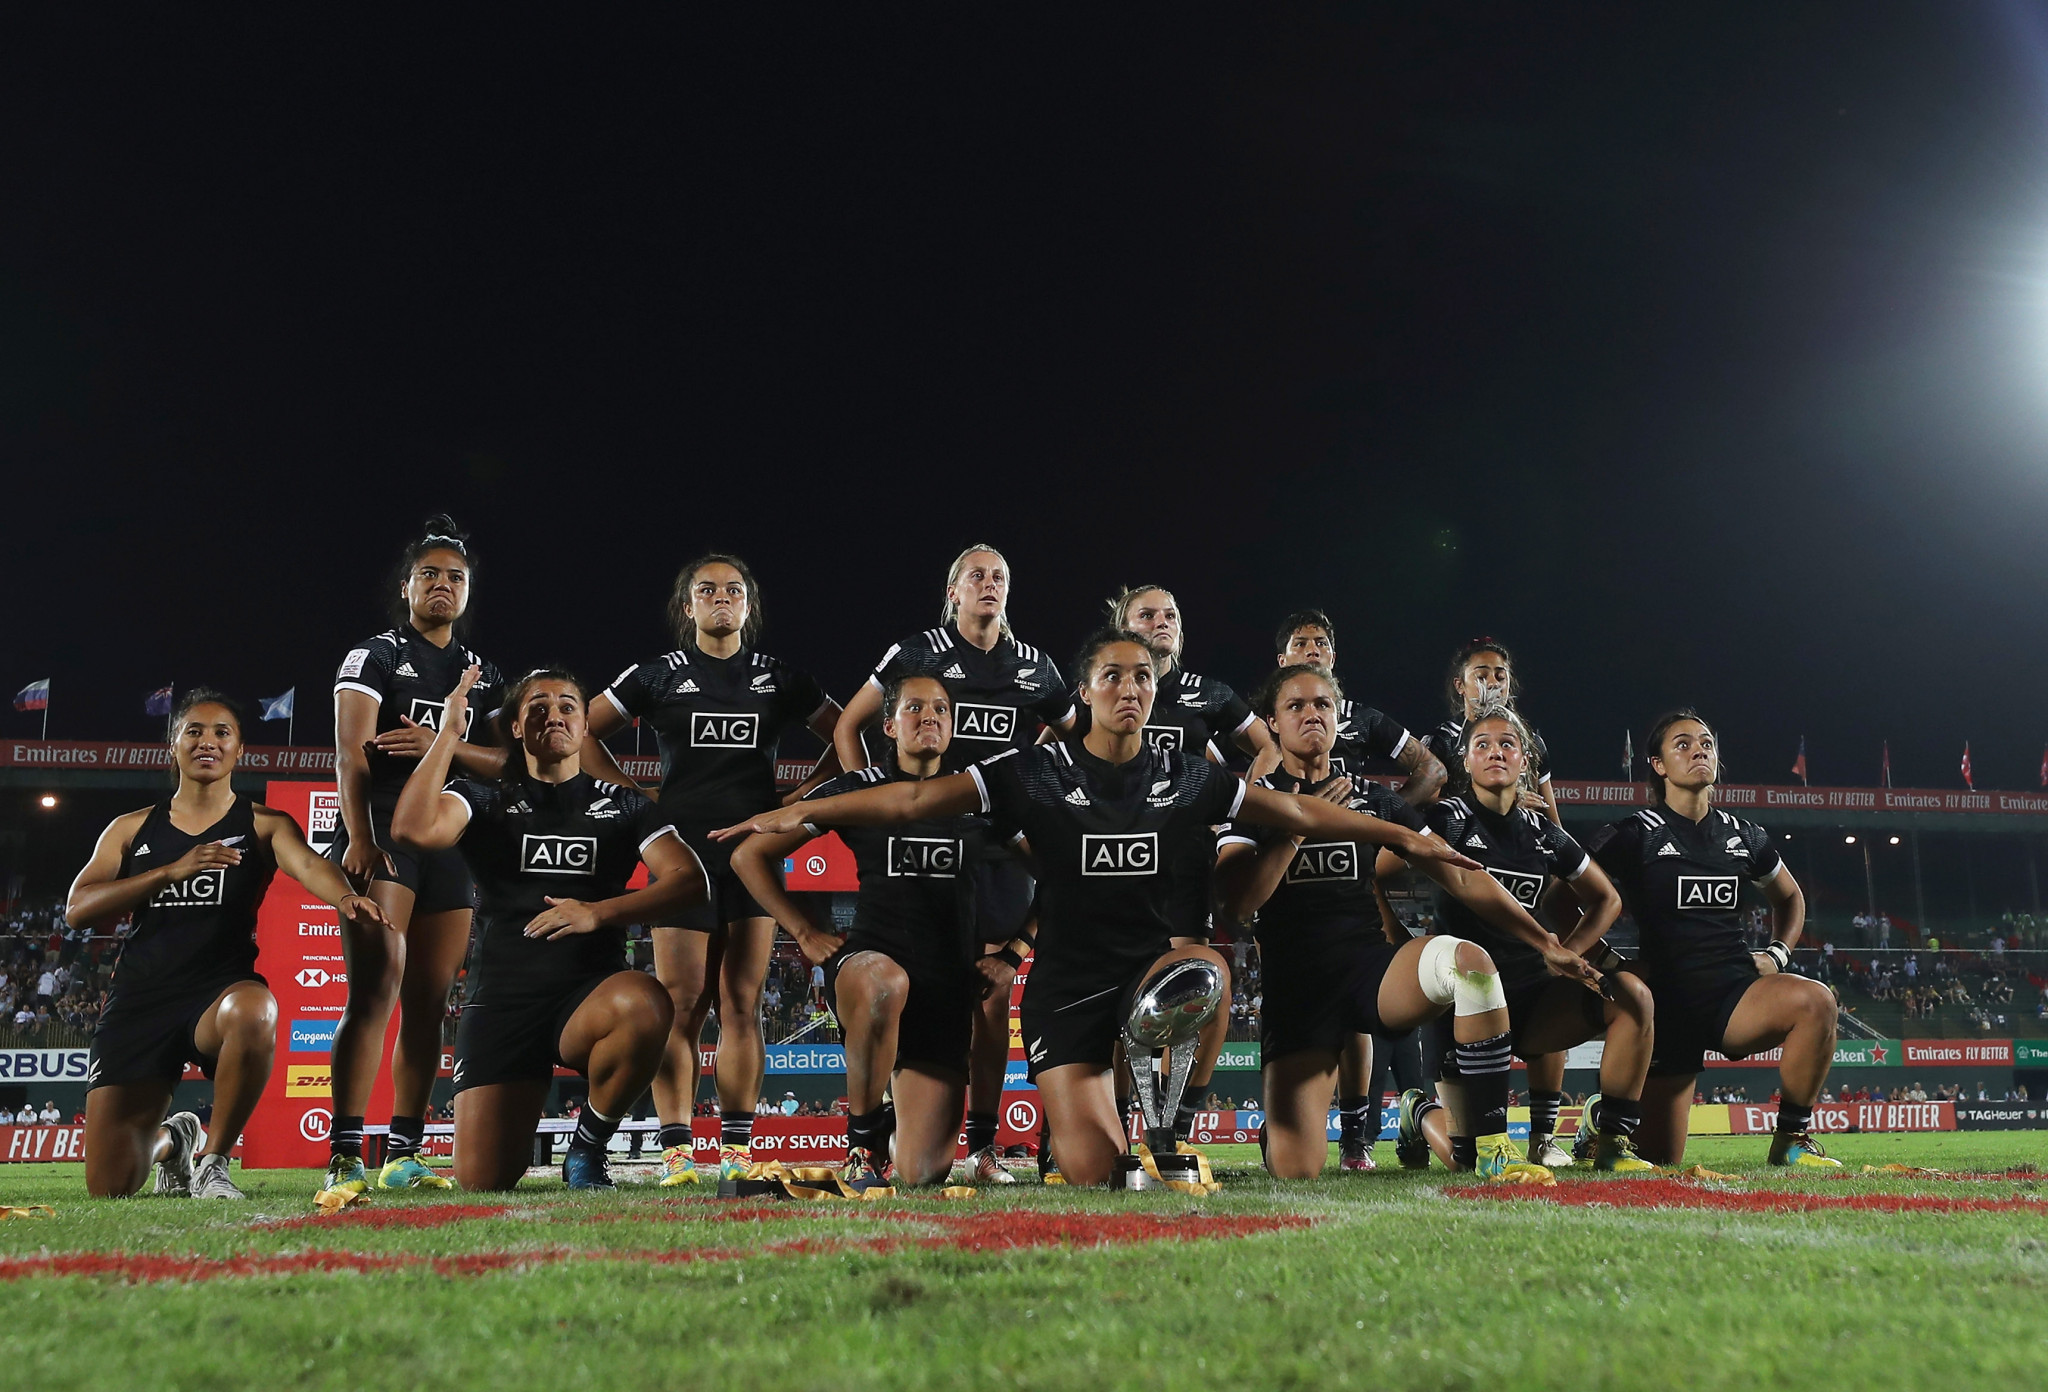 New Zealand perform their celebratory haka after winning the World Rugby Women's Sevens Series in Dubai ©World Rugby